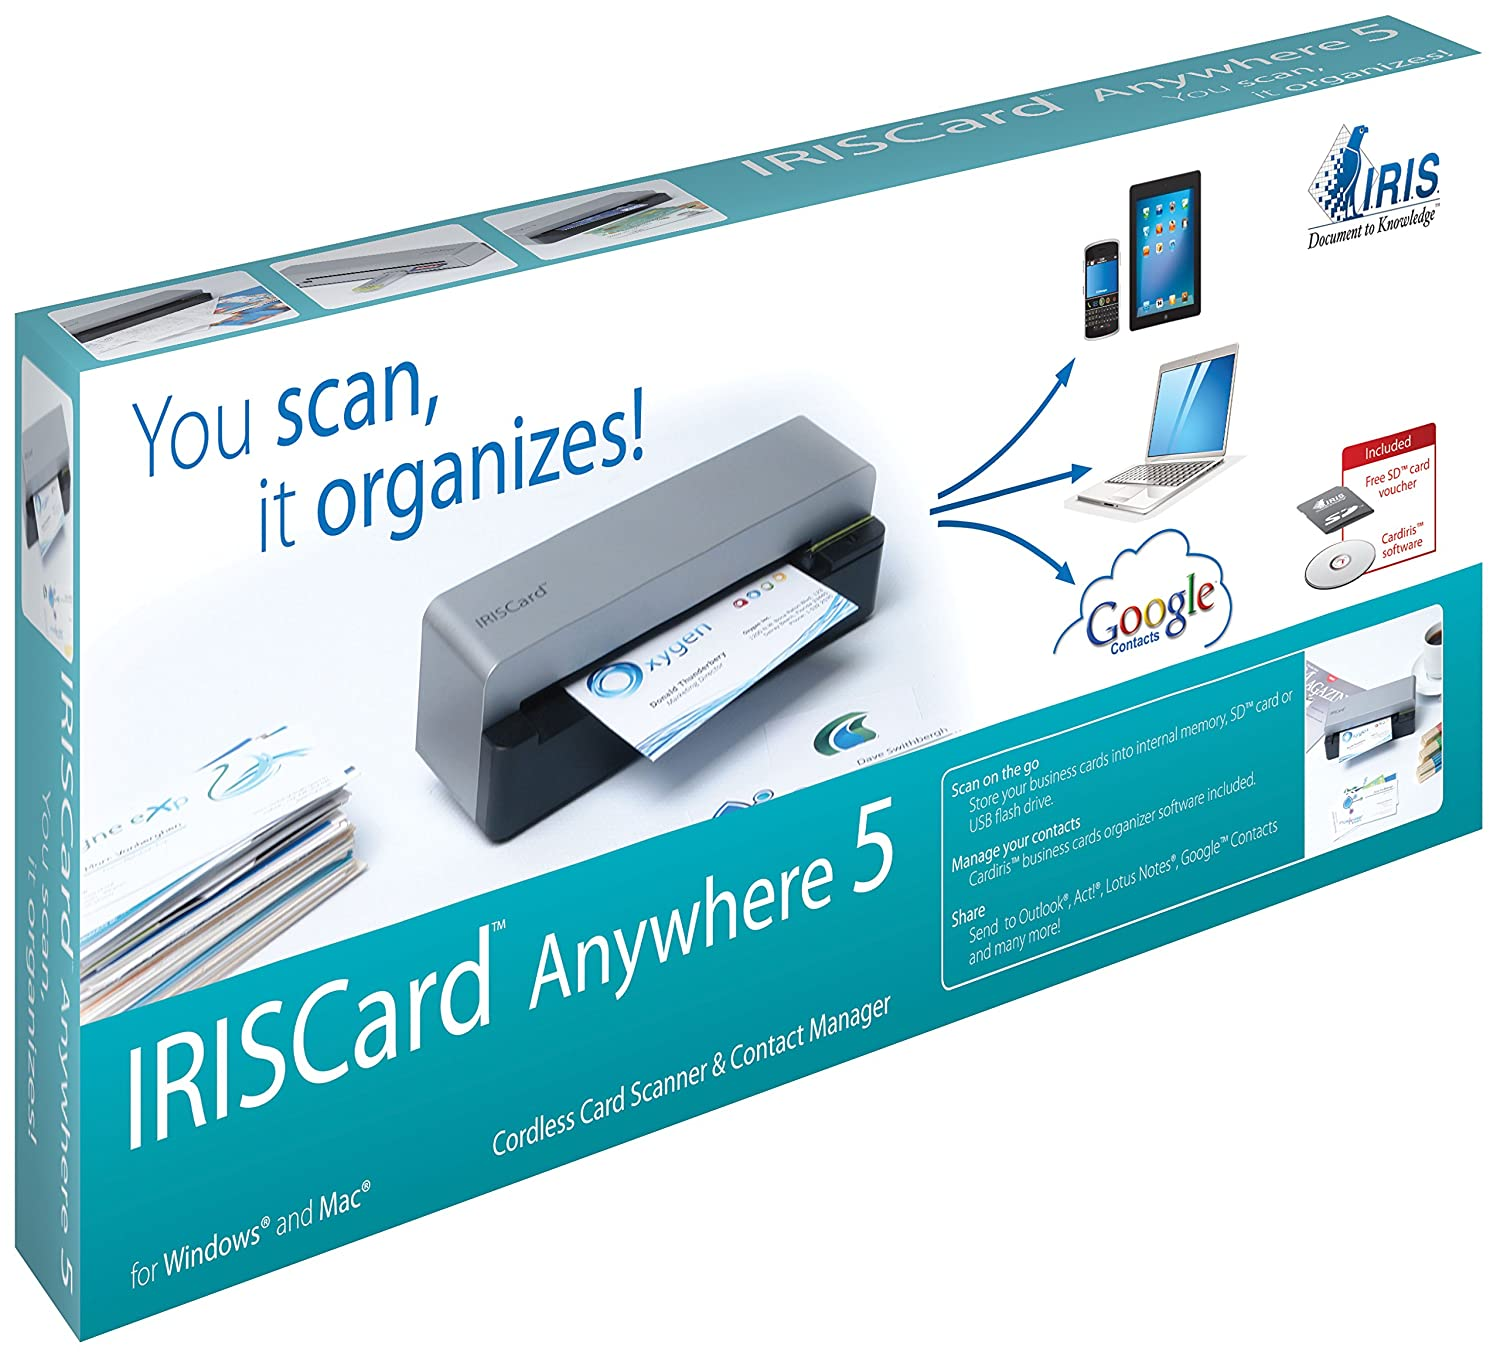 IRIS - IRISCard Anywhere 5 Cordless Card Scanner & Contact Manager I ...